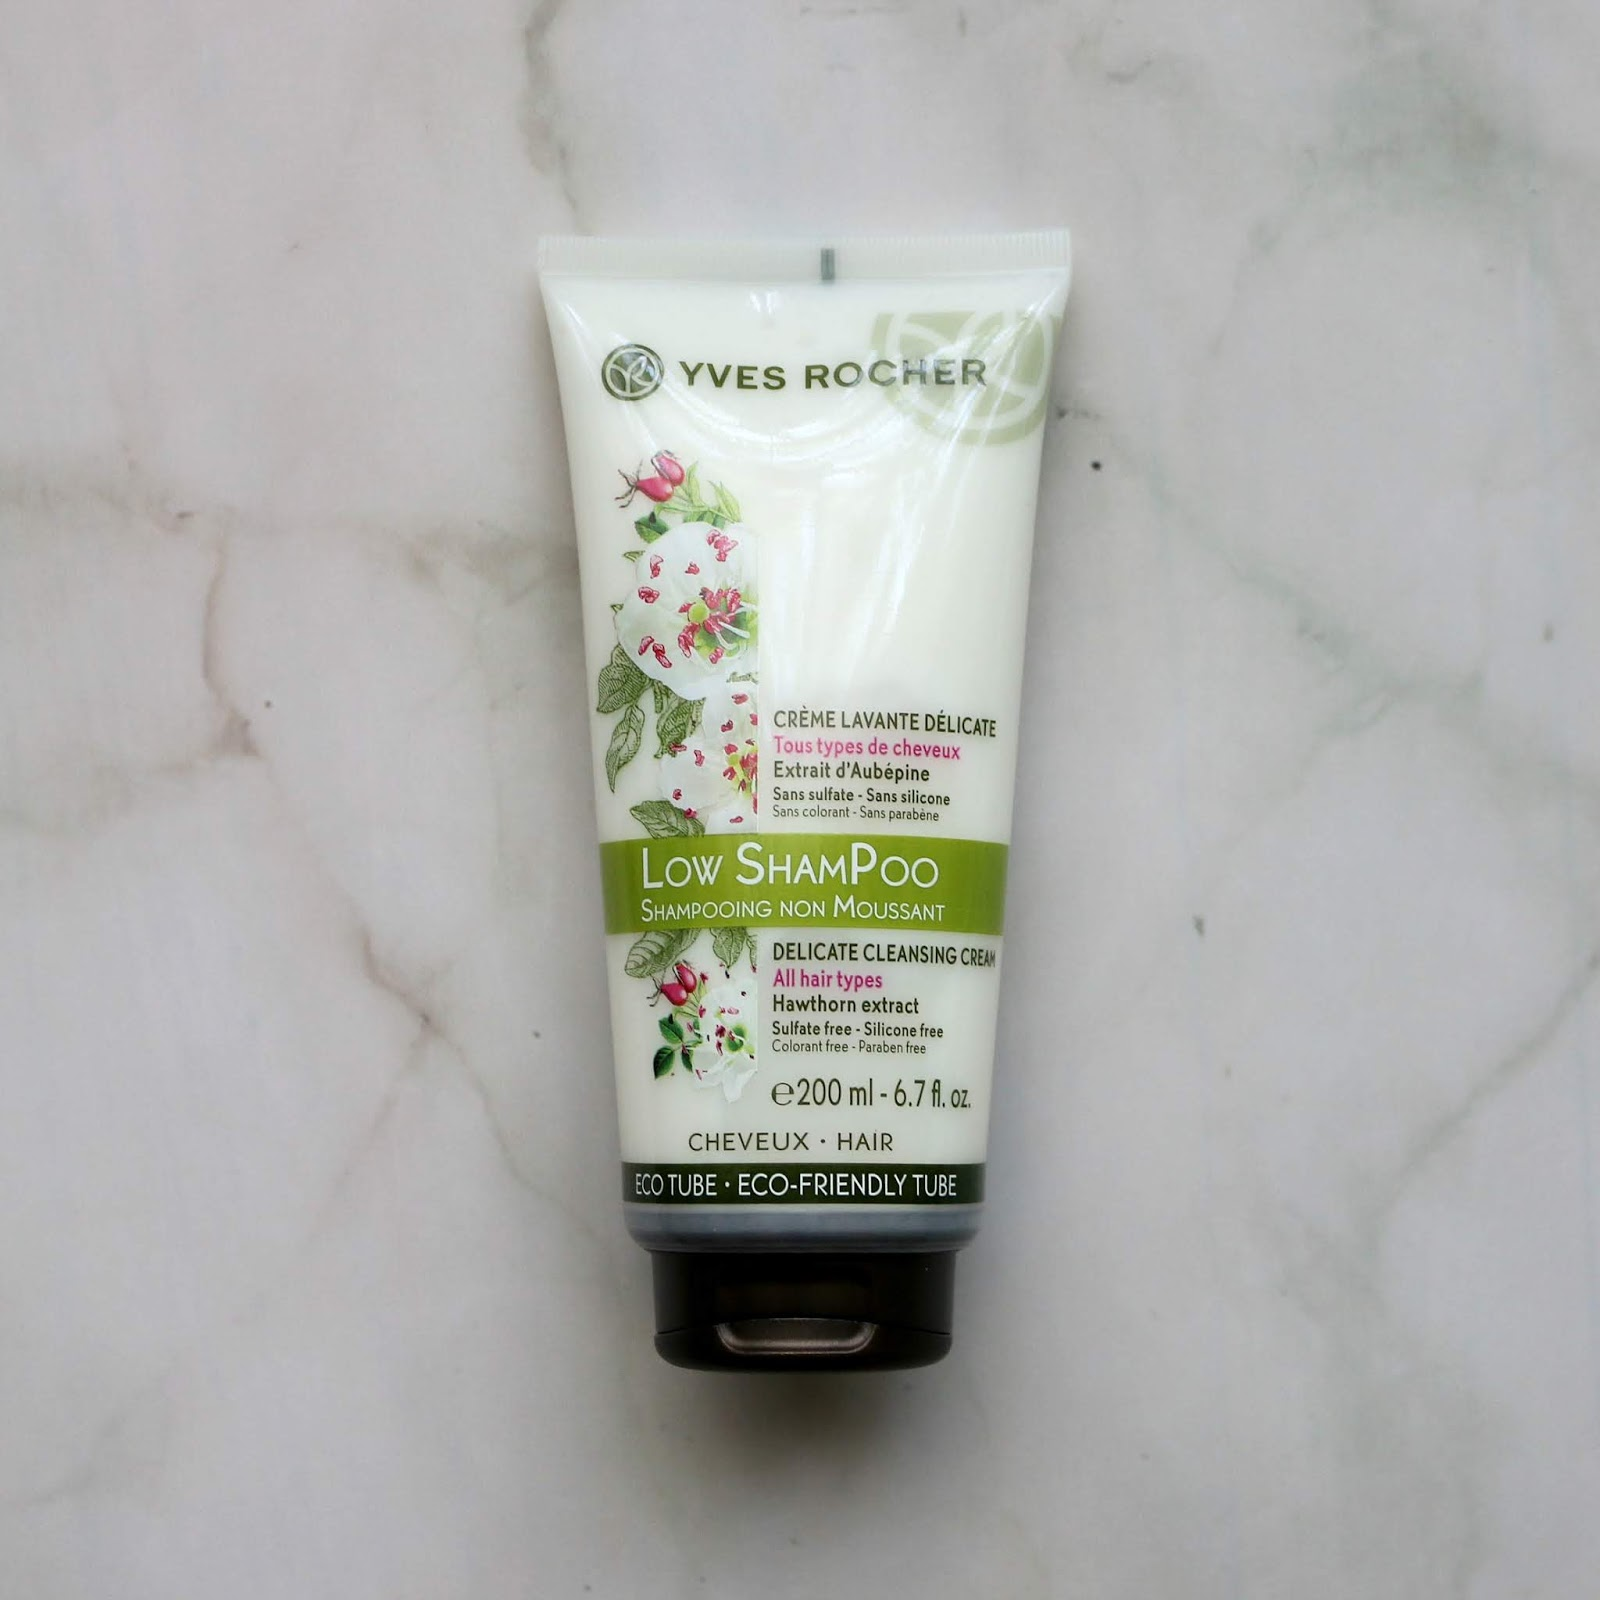 Yves Rocher Low Shampoo